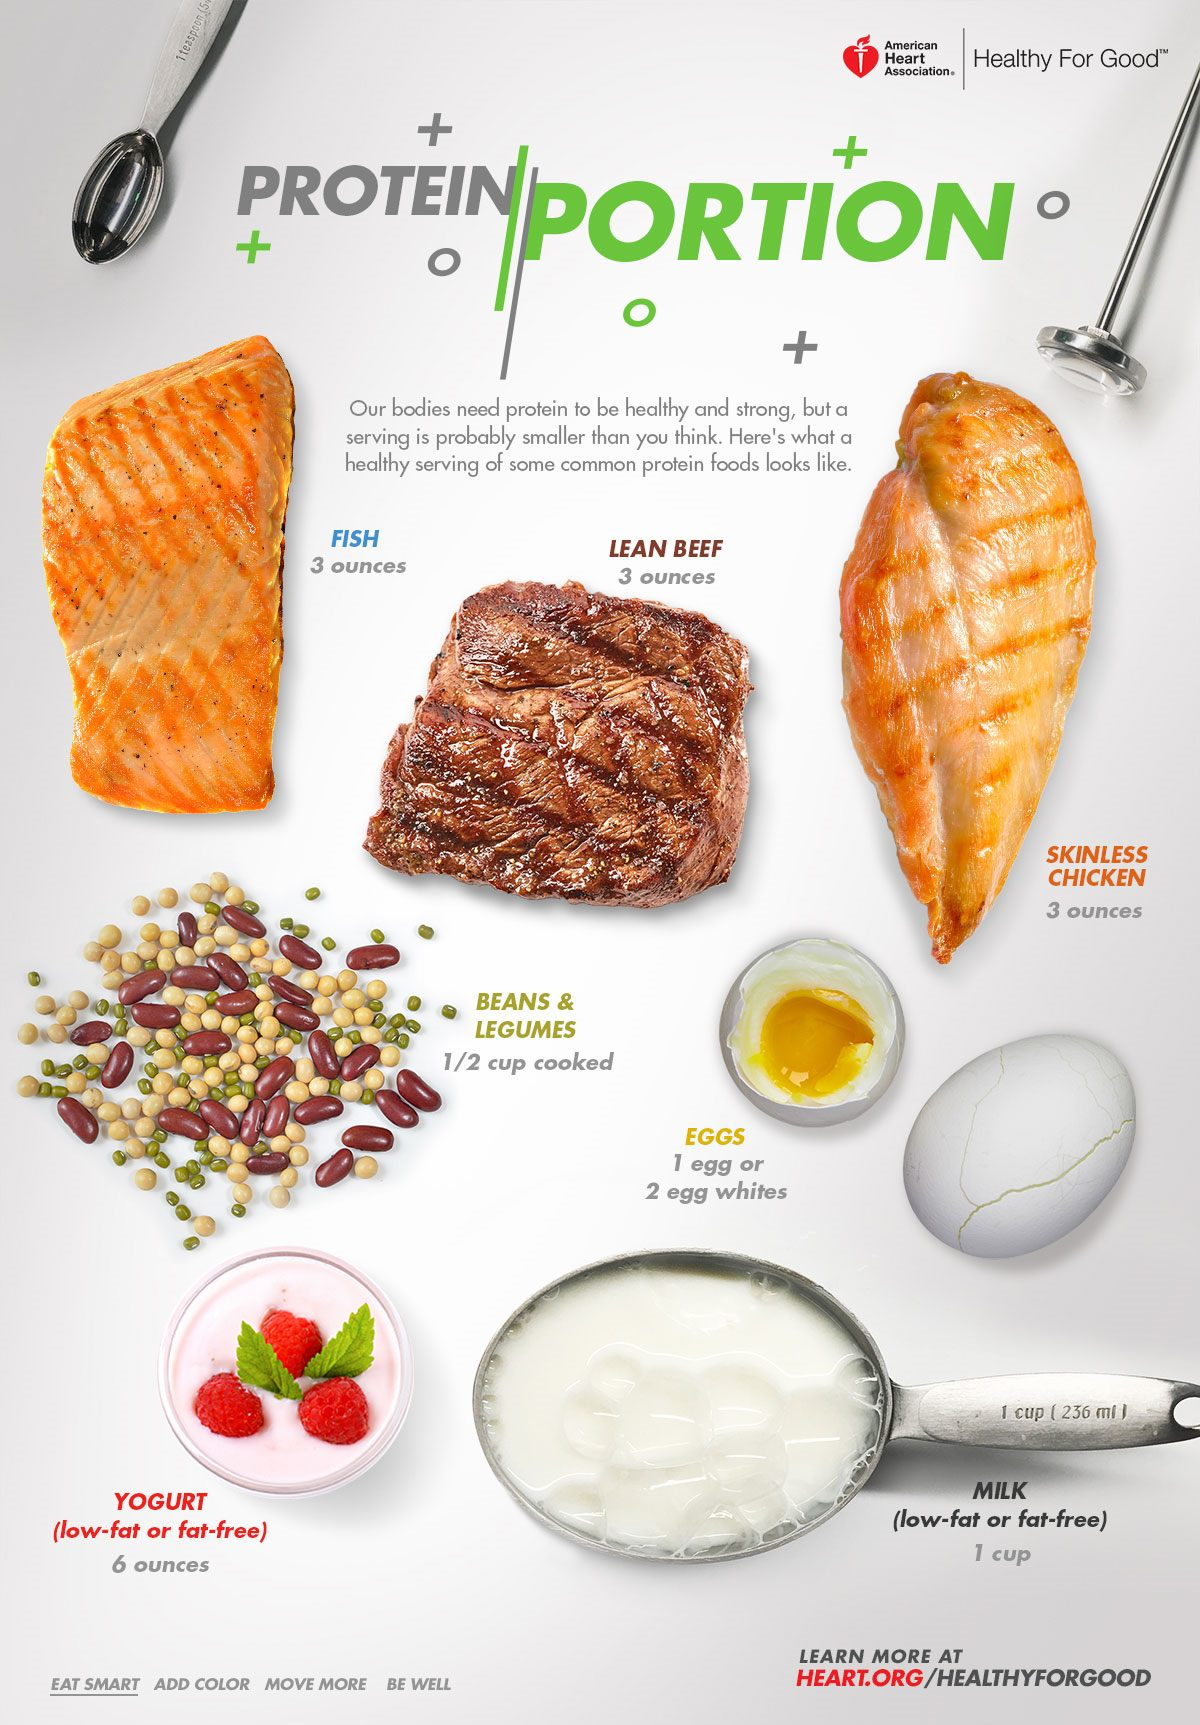 Eat more protein to help reduce stubborn belly fat